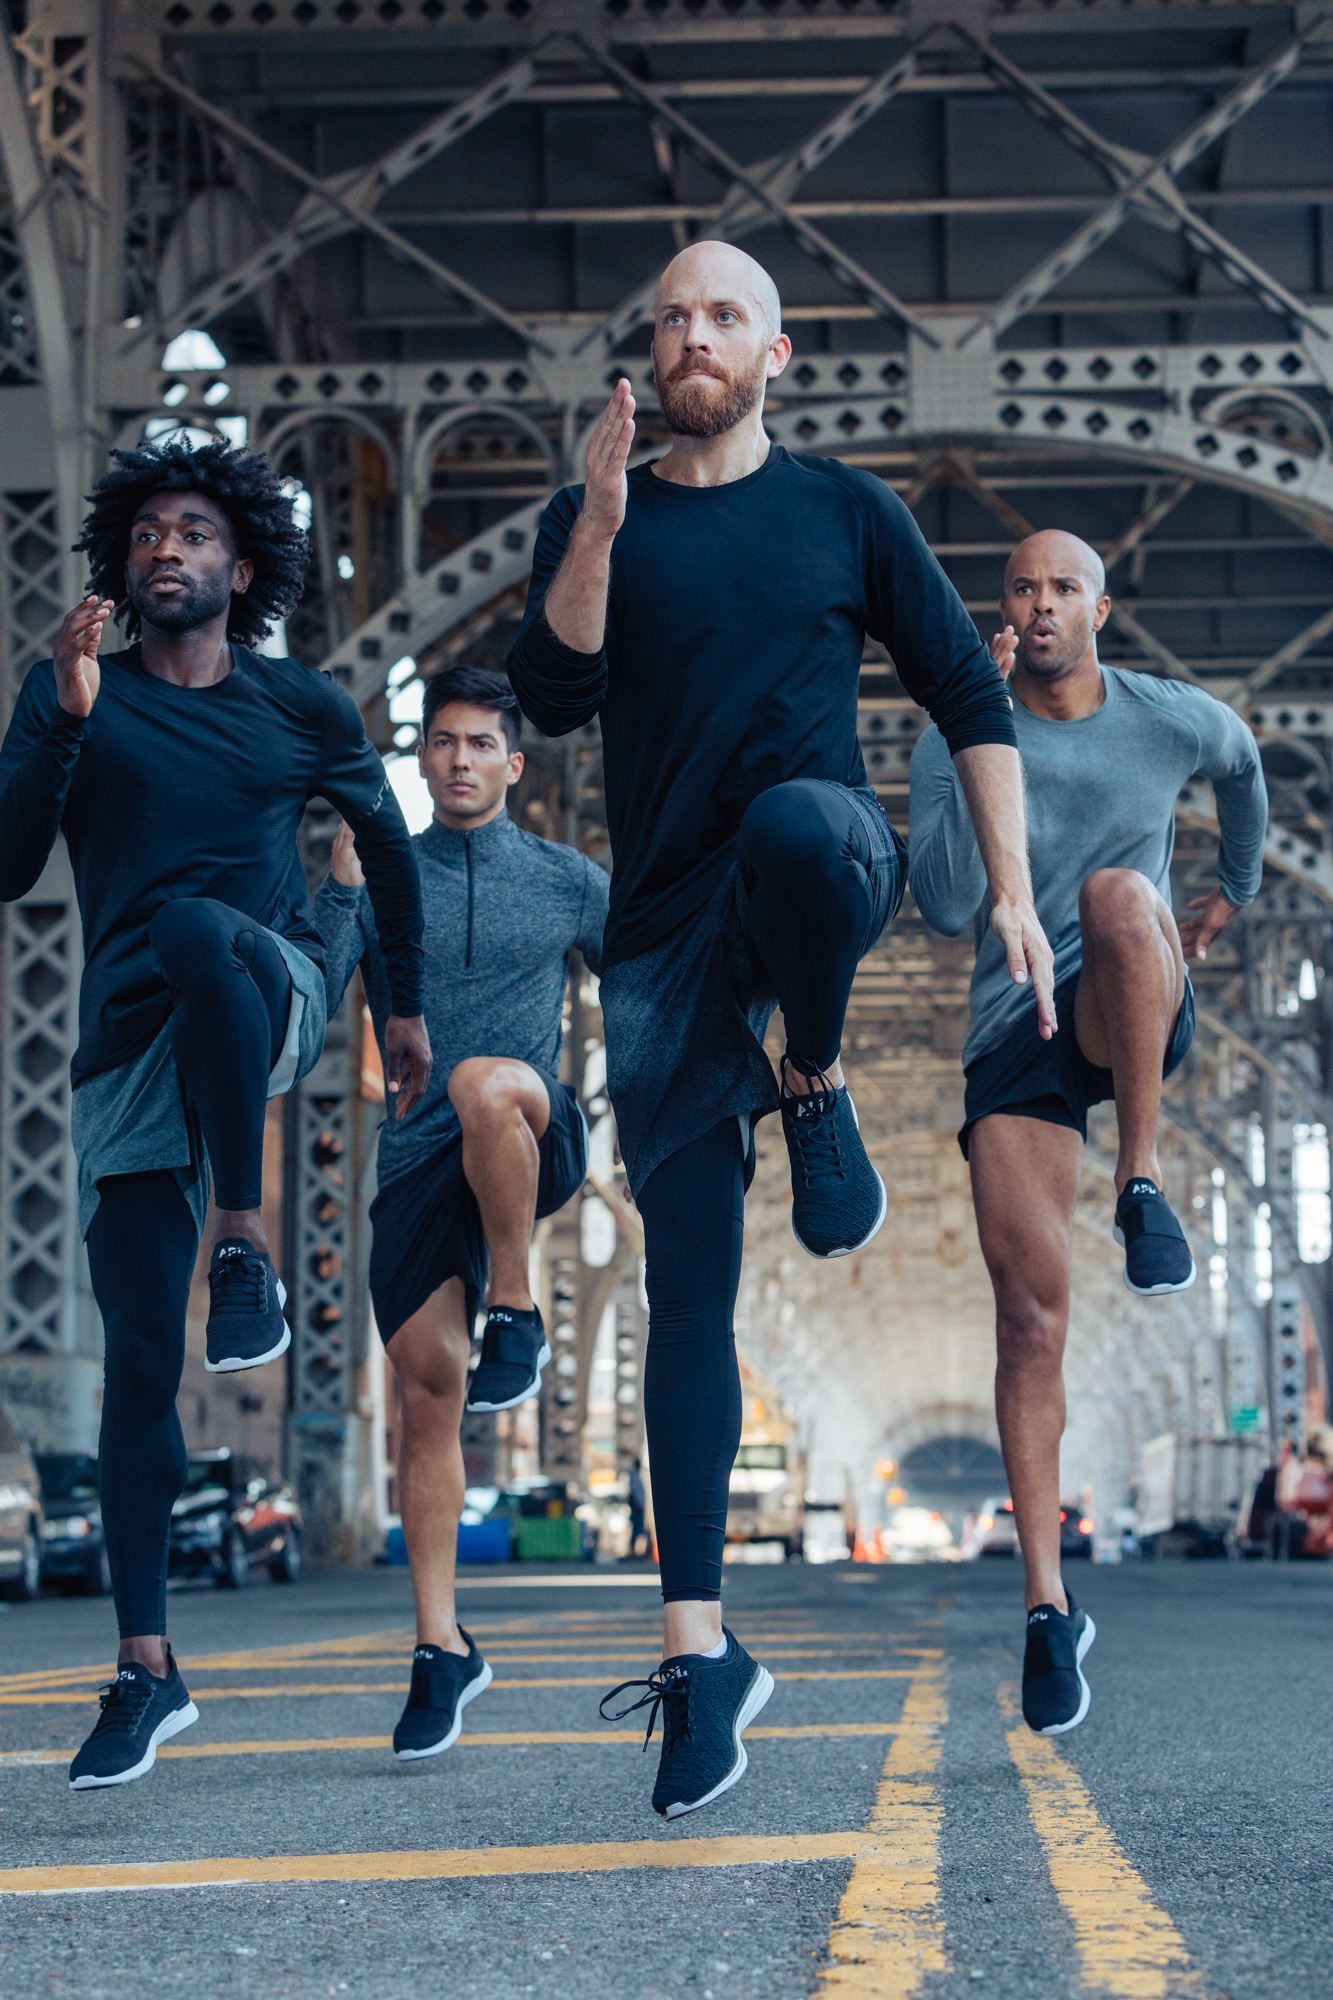 Group mens train lifestyle photography direction for activewear brand lululemon in new york city